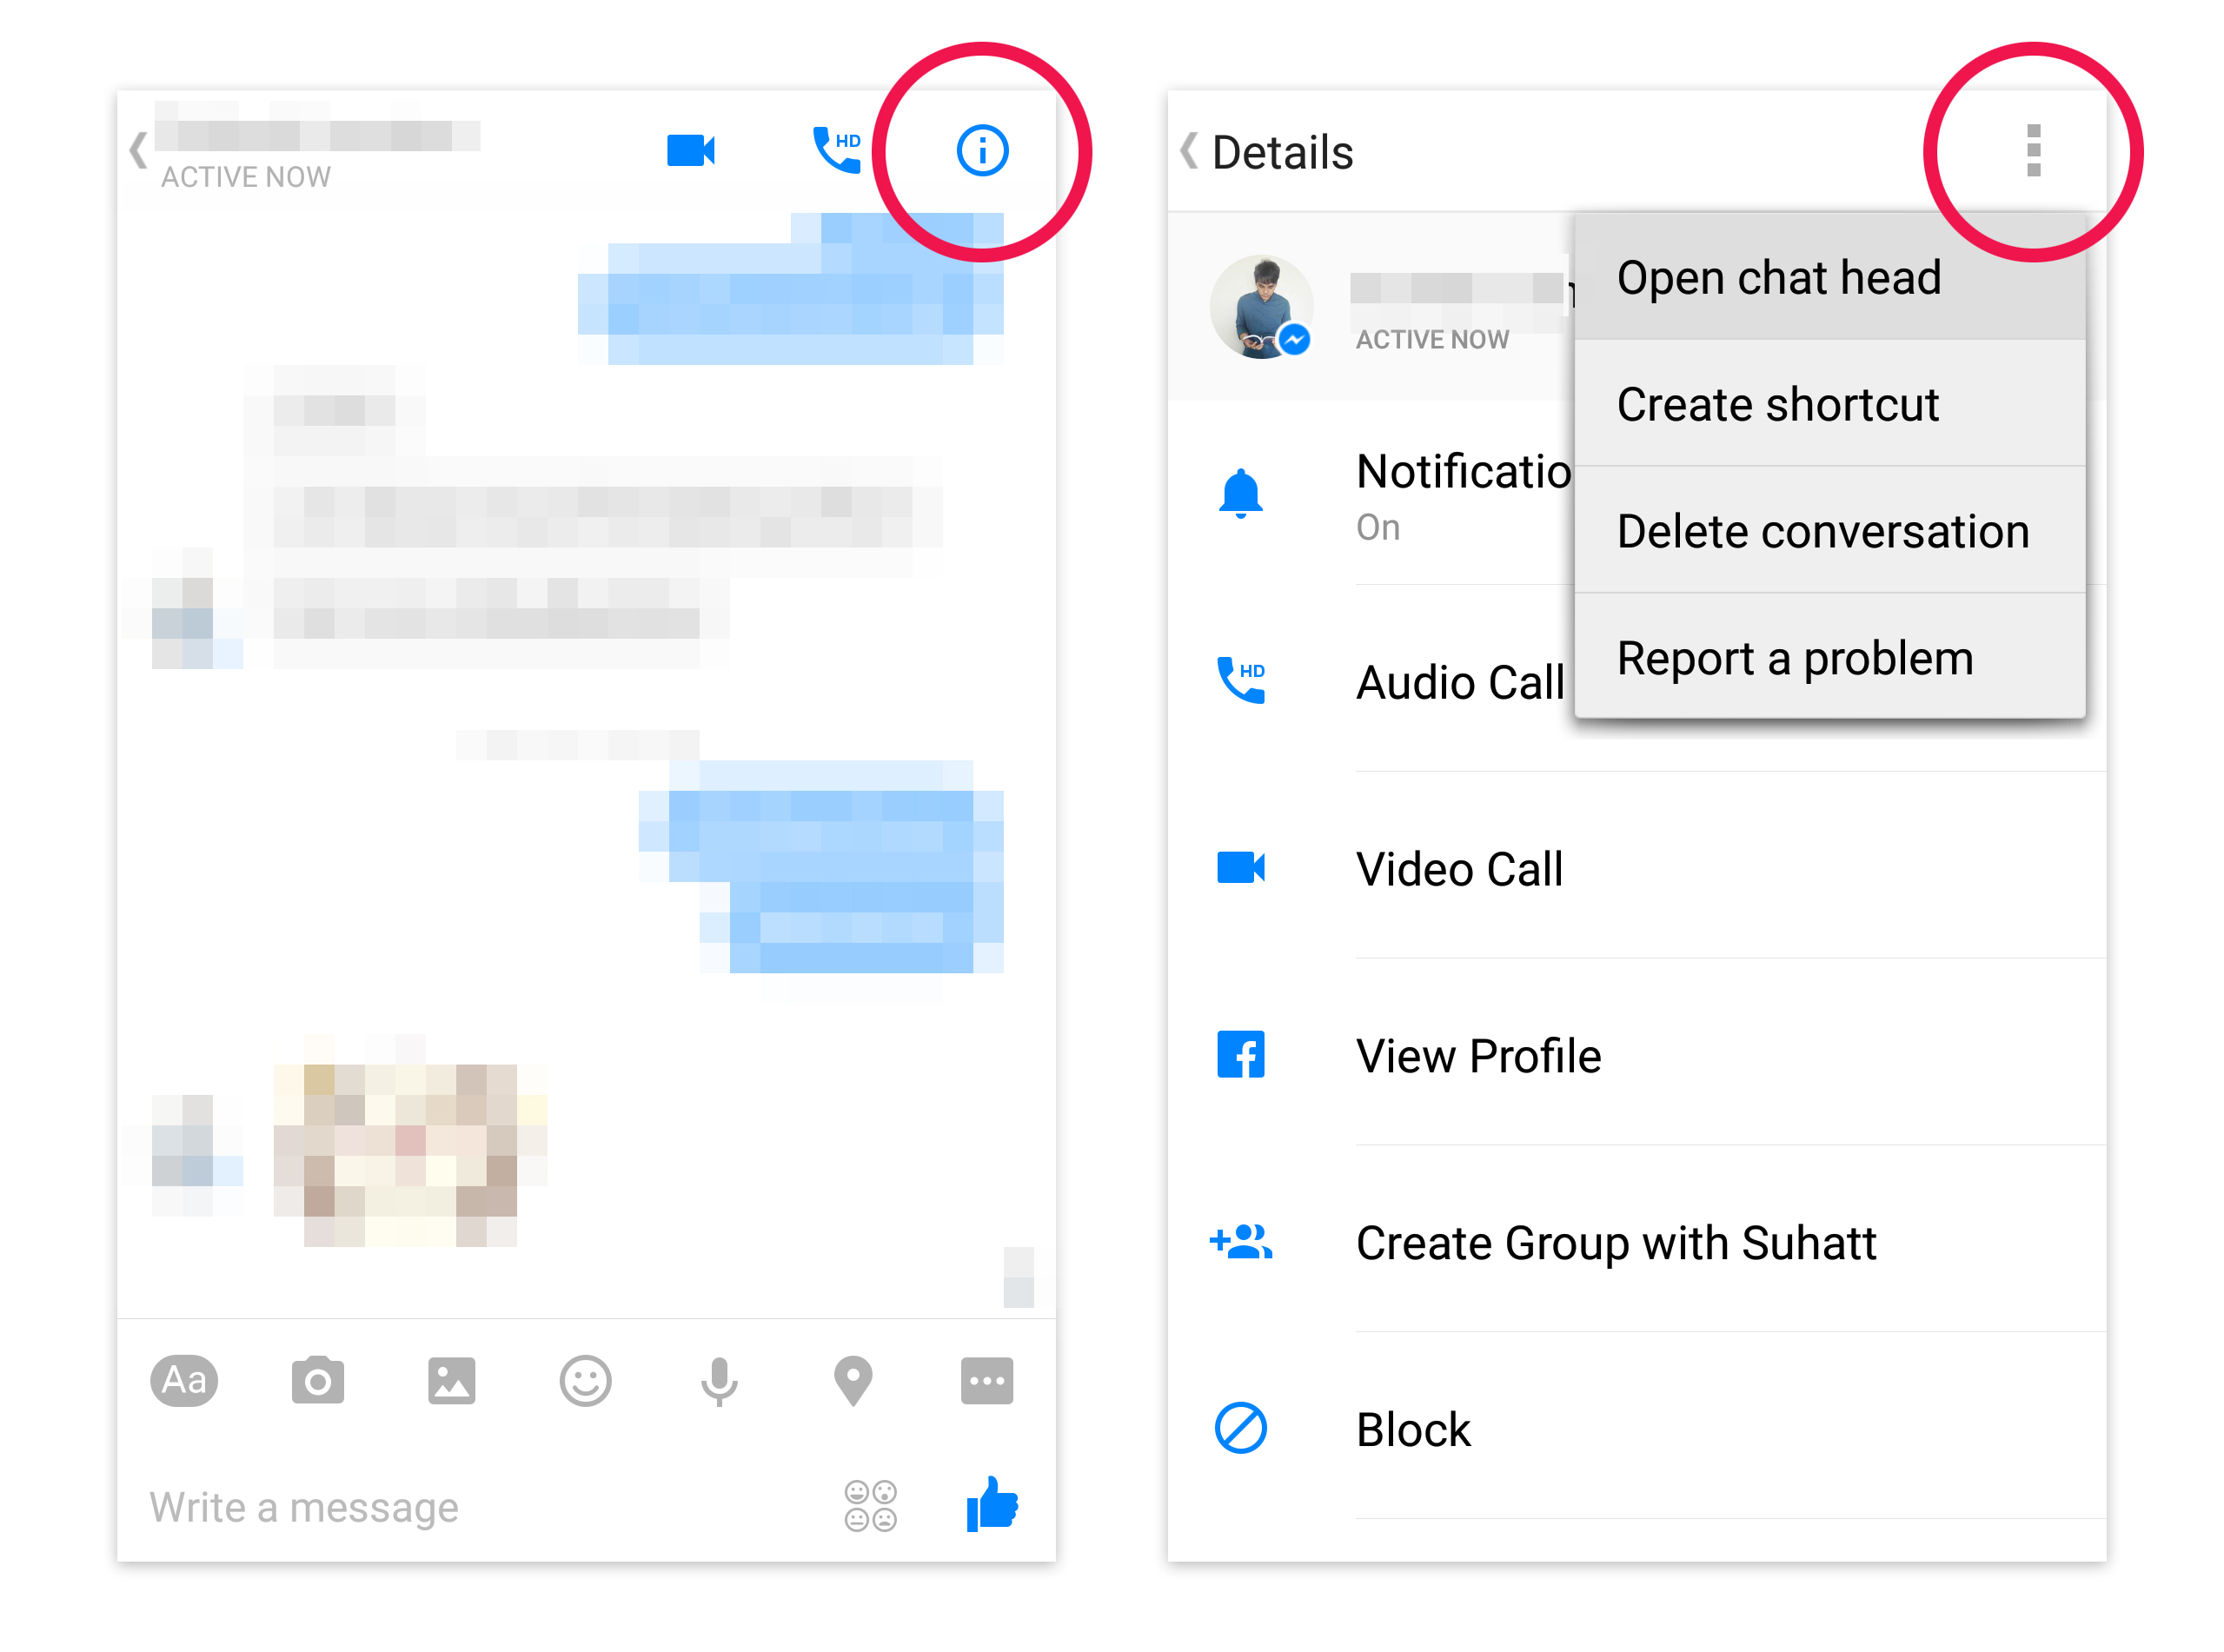 open chat heads